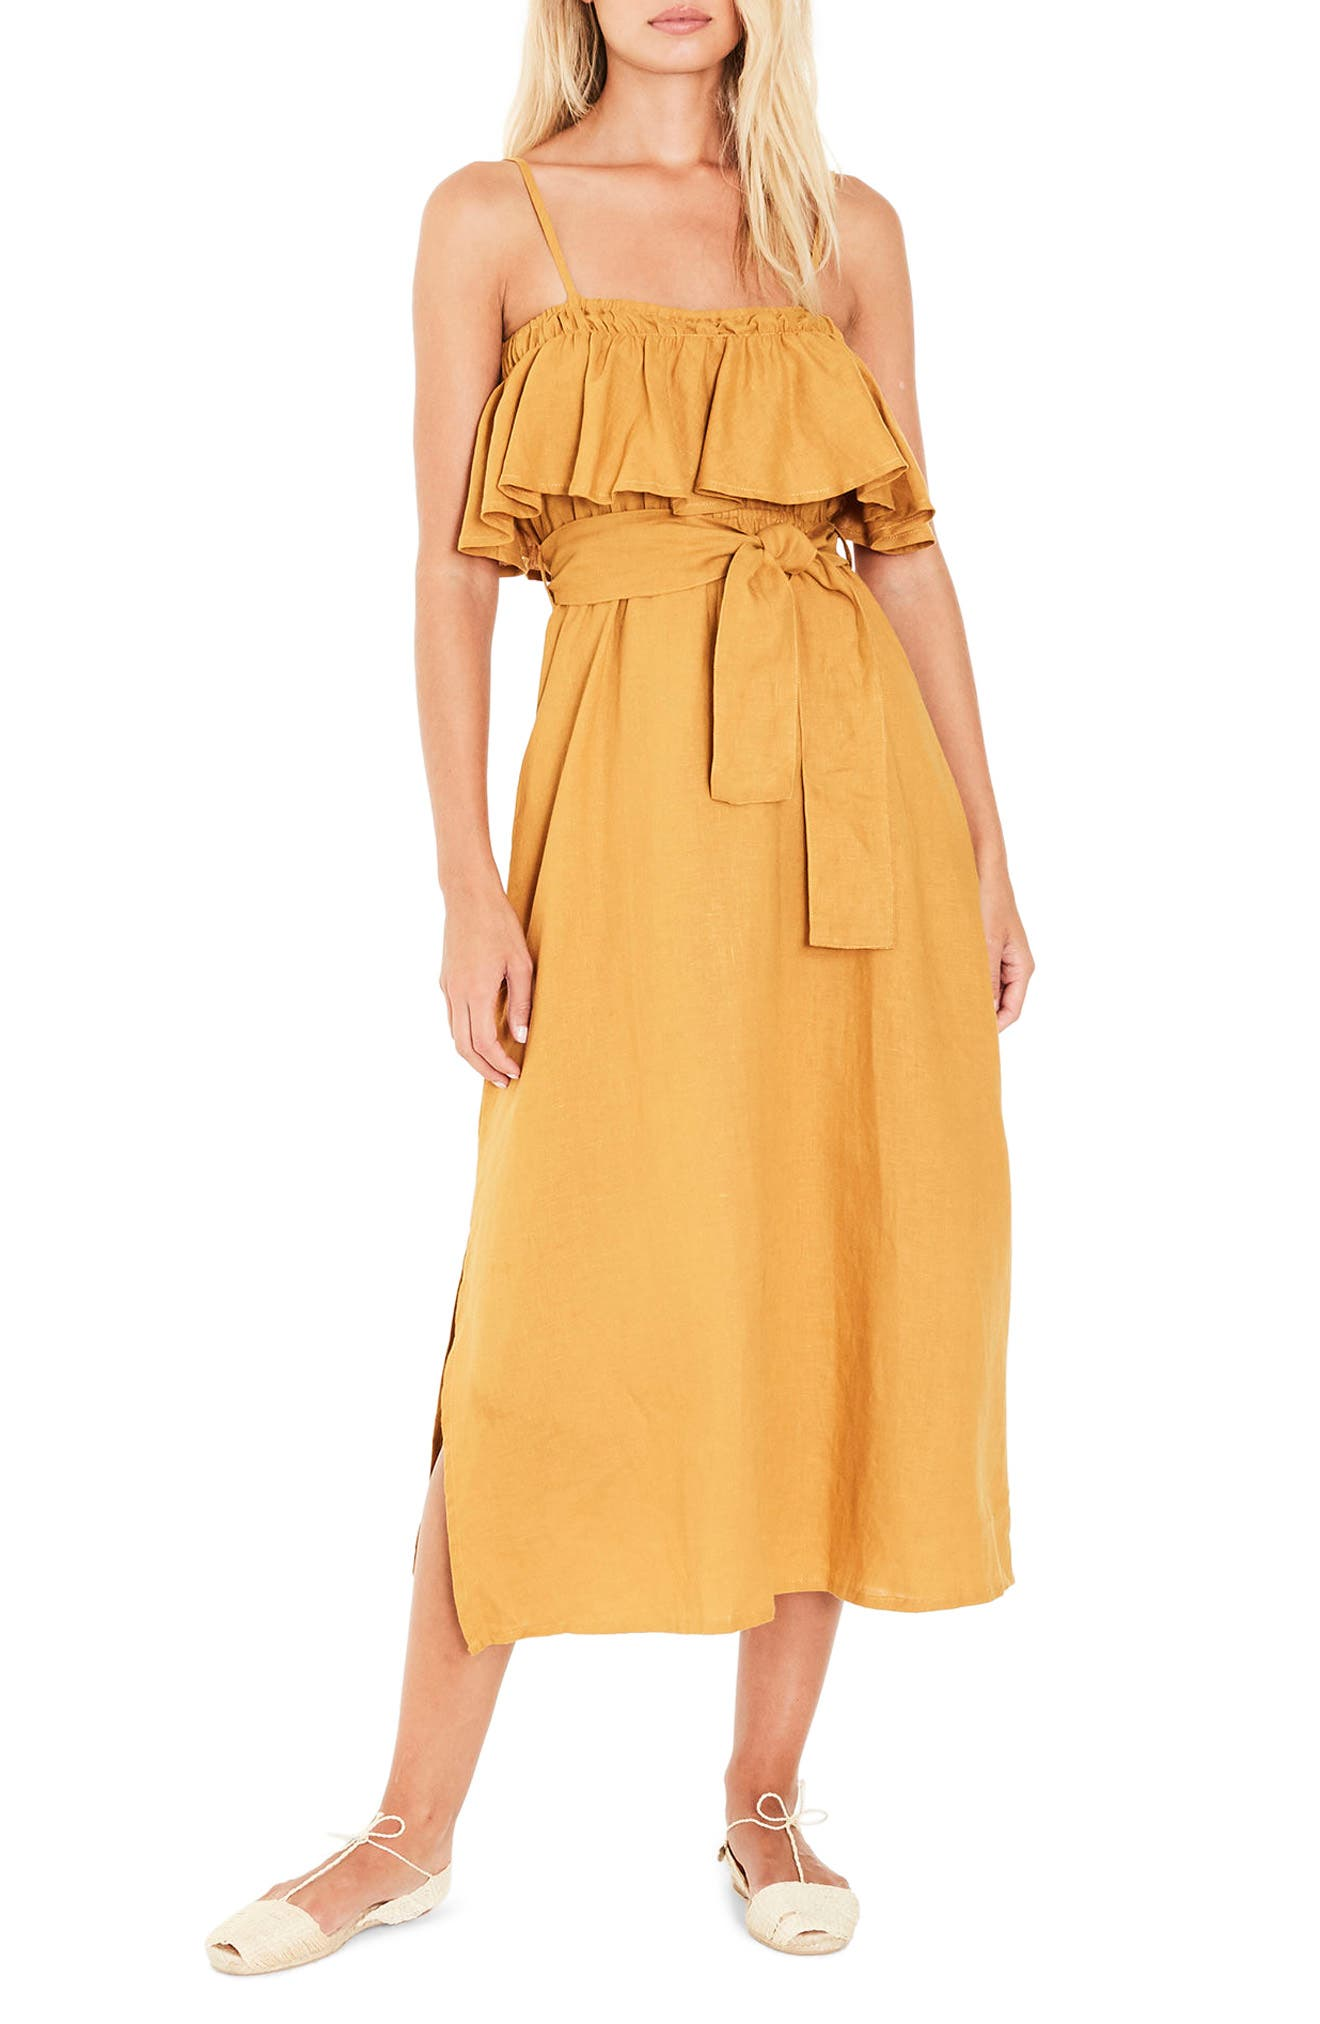 Santo Linen Midi Dress,                             Main thumbnail 1, color,                             PLAIN MARIGOLD